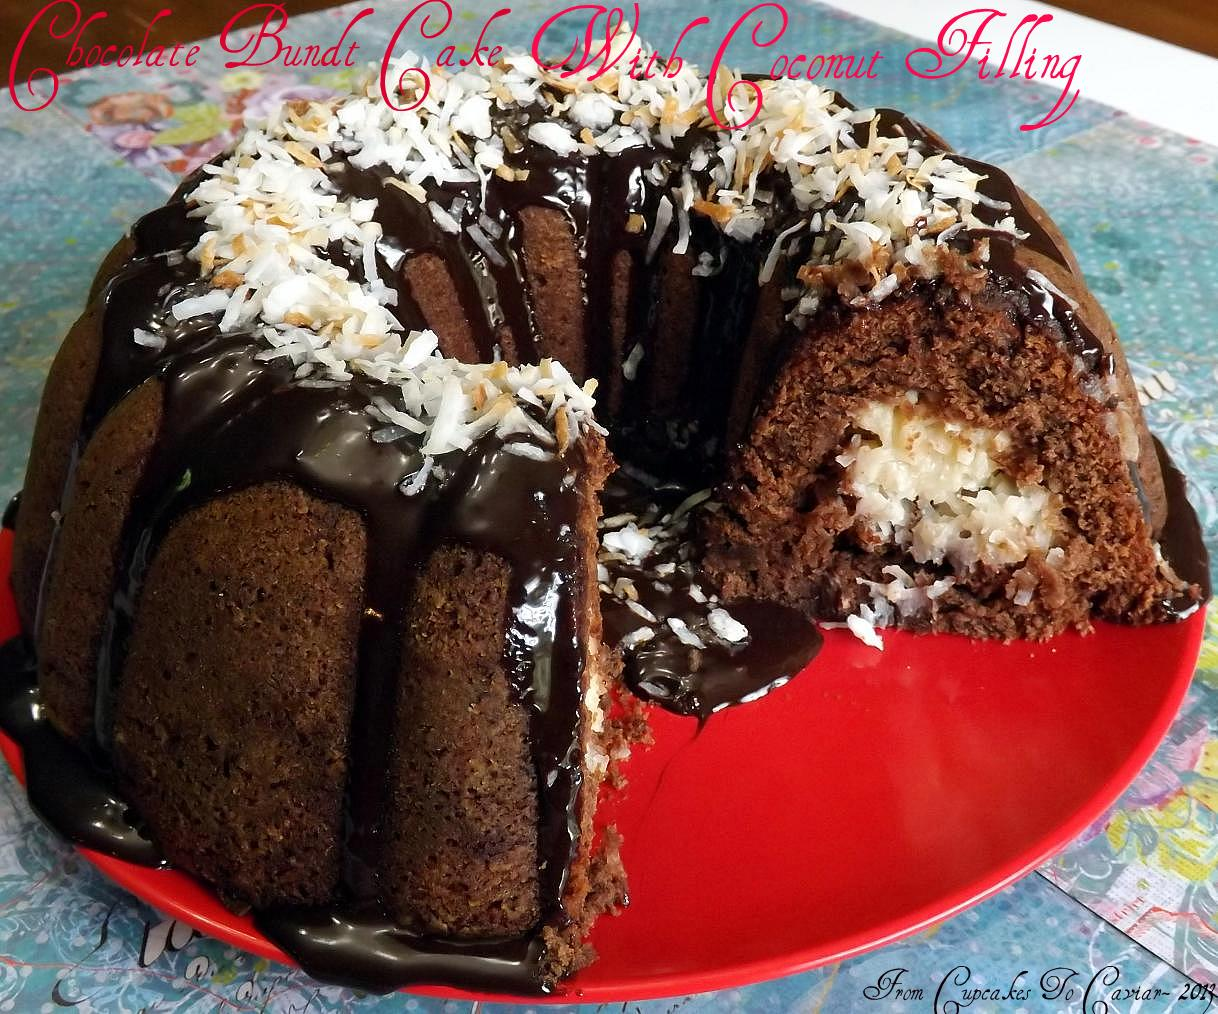 Chocolate Bundt Cake With A Creamy Coconut Filling